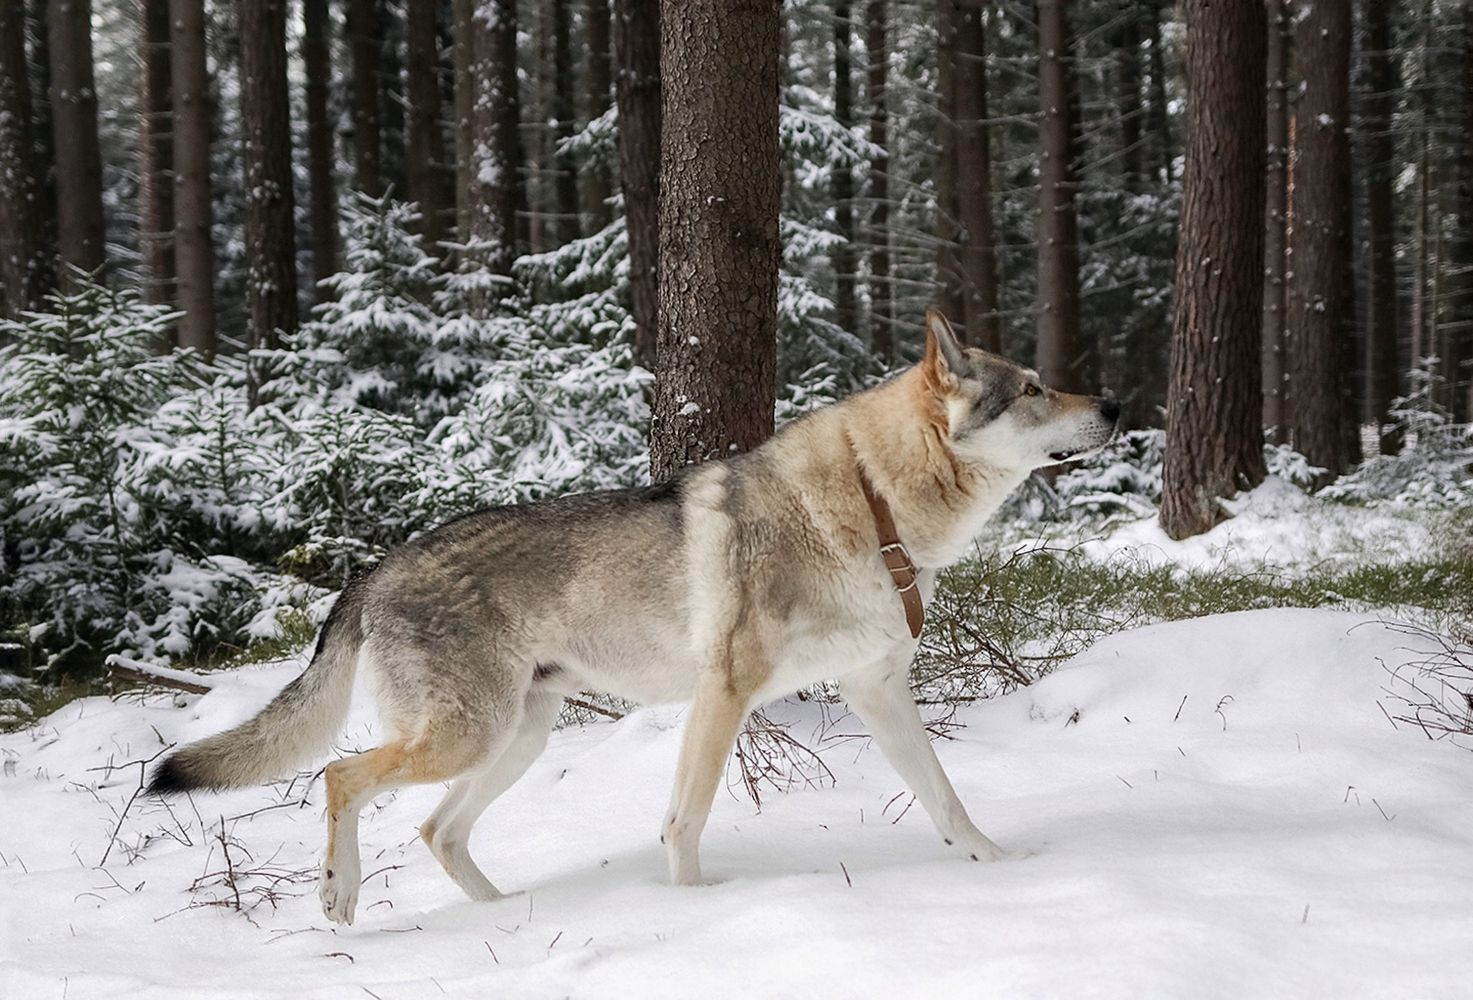 Now, the ego is not the same as a discipline we pursue with wolfdogs. Creating a bond where a wolfdog does listen to you can be set when making sure you follow the same discipline you expect from them with one difference from pushing ego instead – it's done calmly but firmly.   #animalbehavior #nageoyourshot #wolfdog